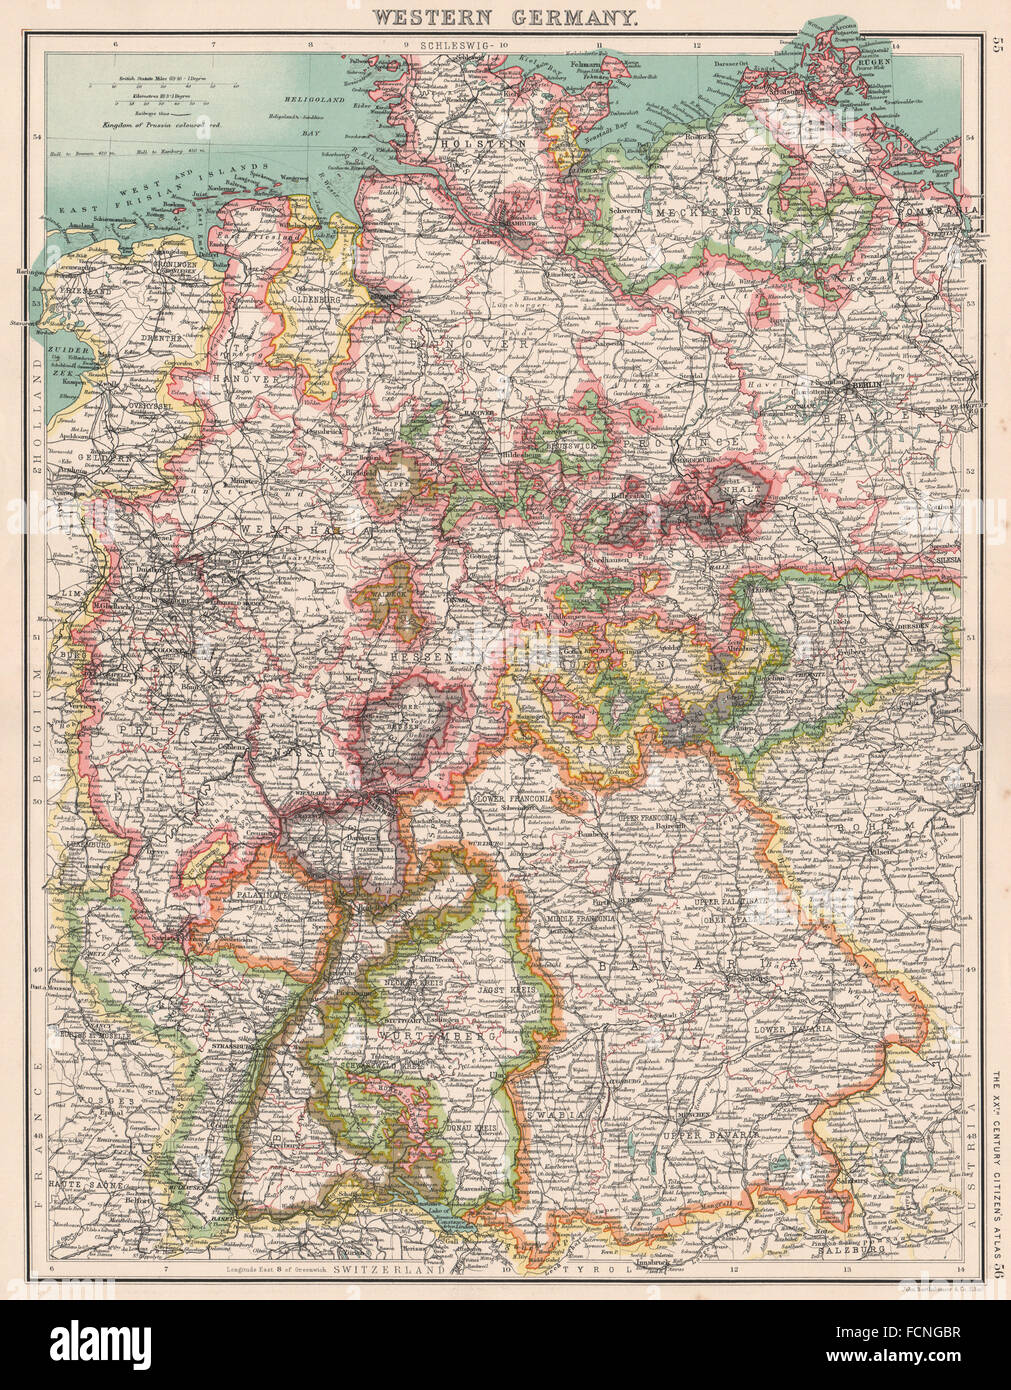 WESTERN GERMANY Showing states Brandenburg Hanover Westphalia